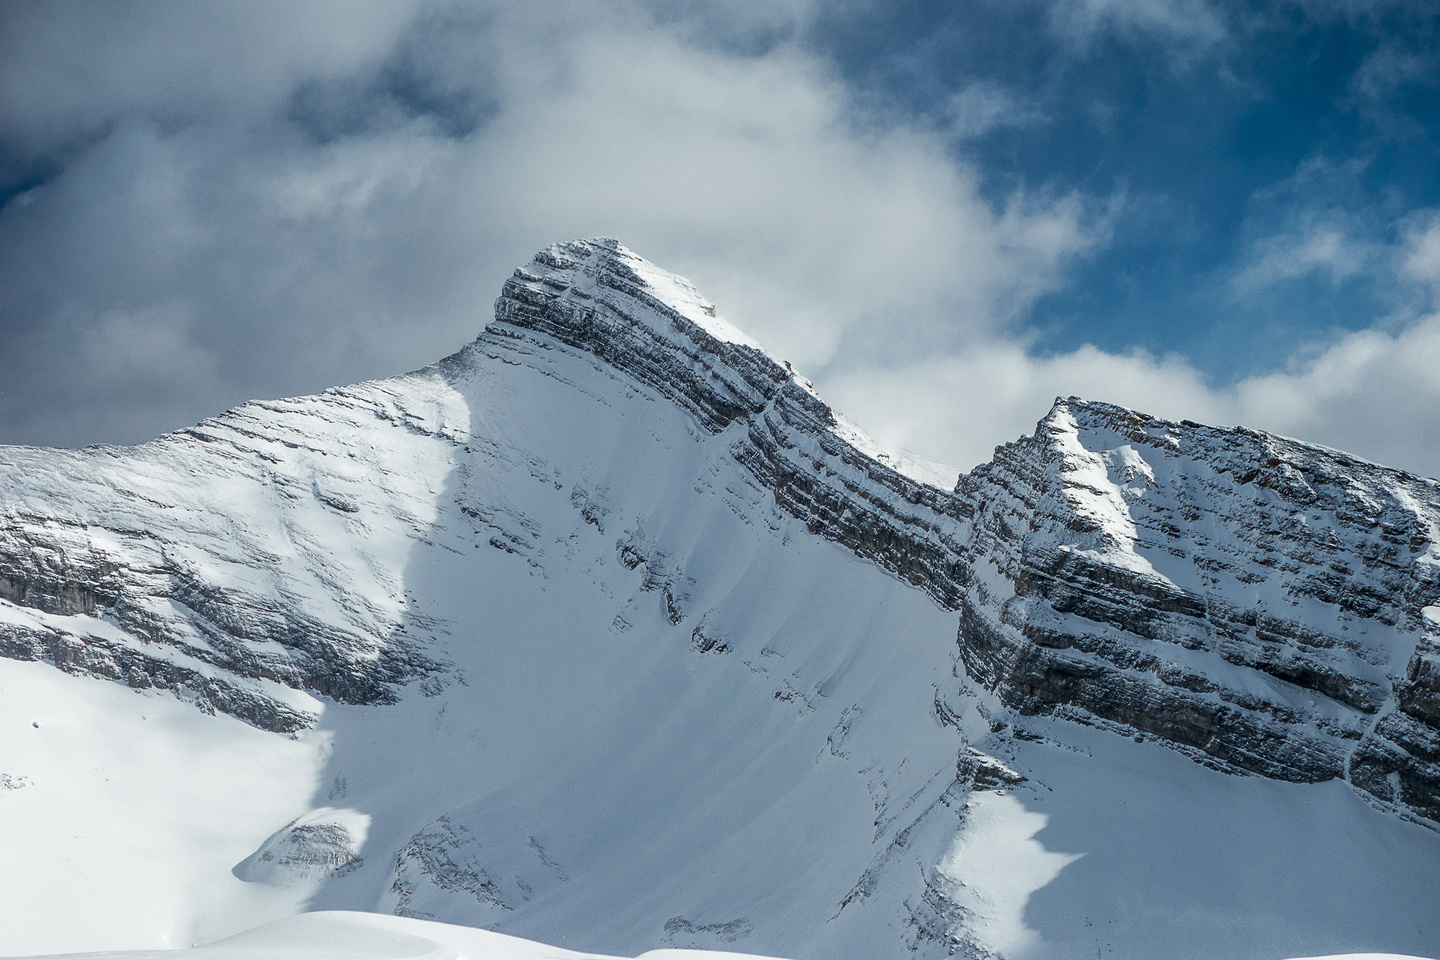 One of my favorite shots from the summit of Red Ridge - this is Mount Bogart.